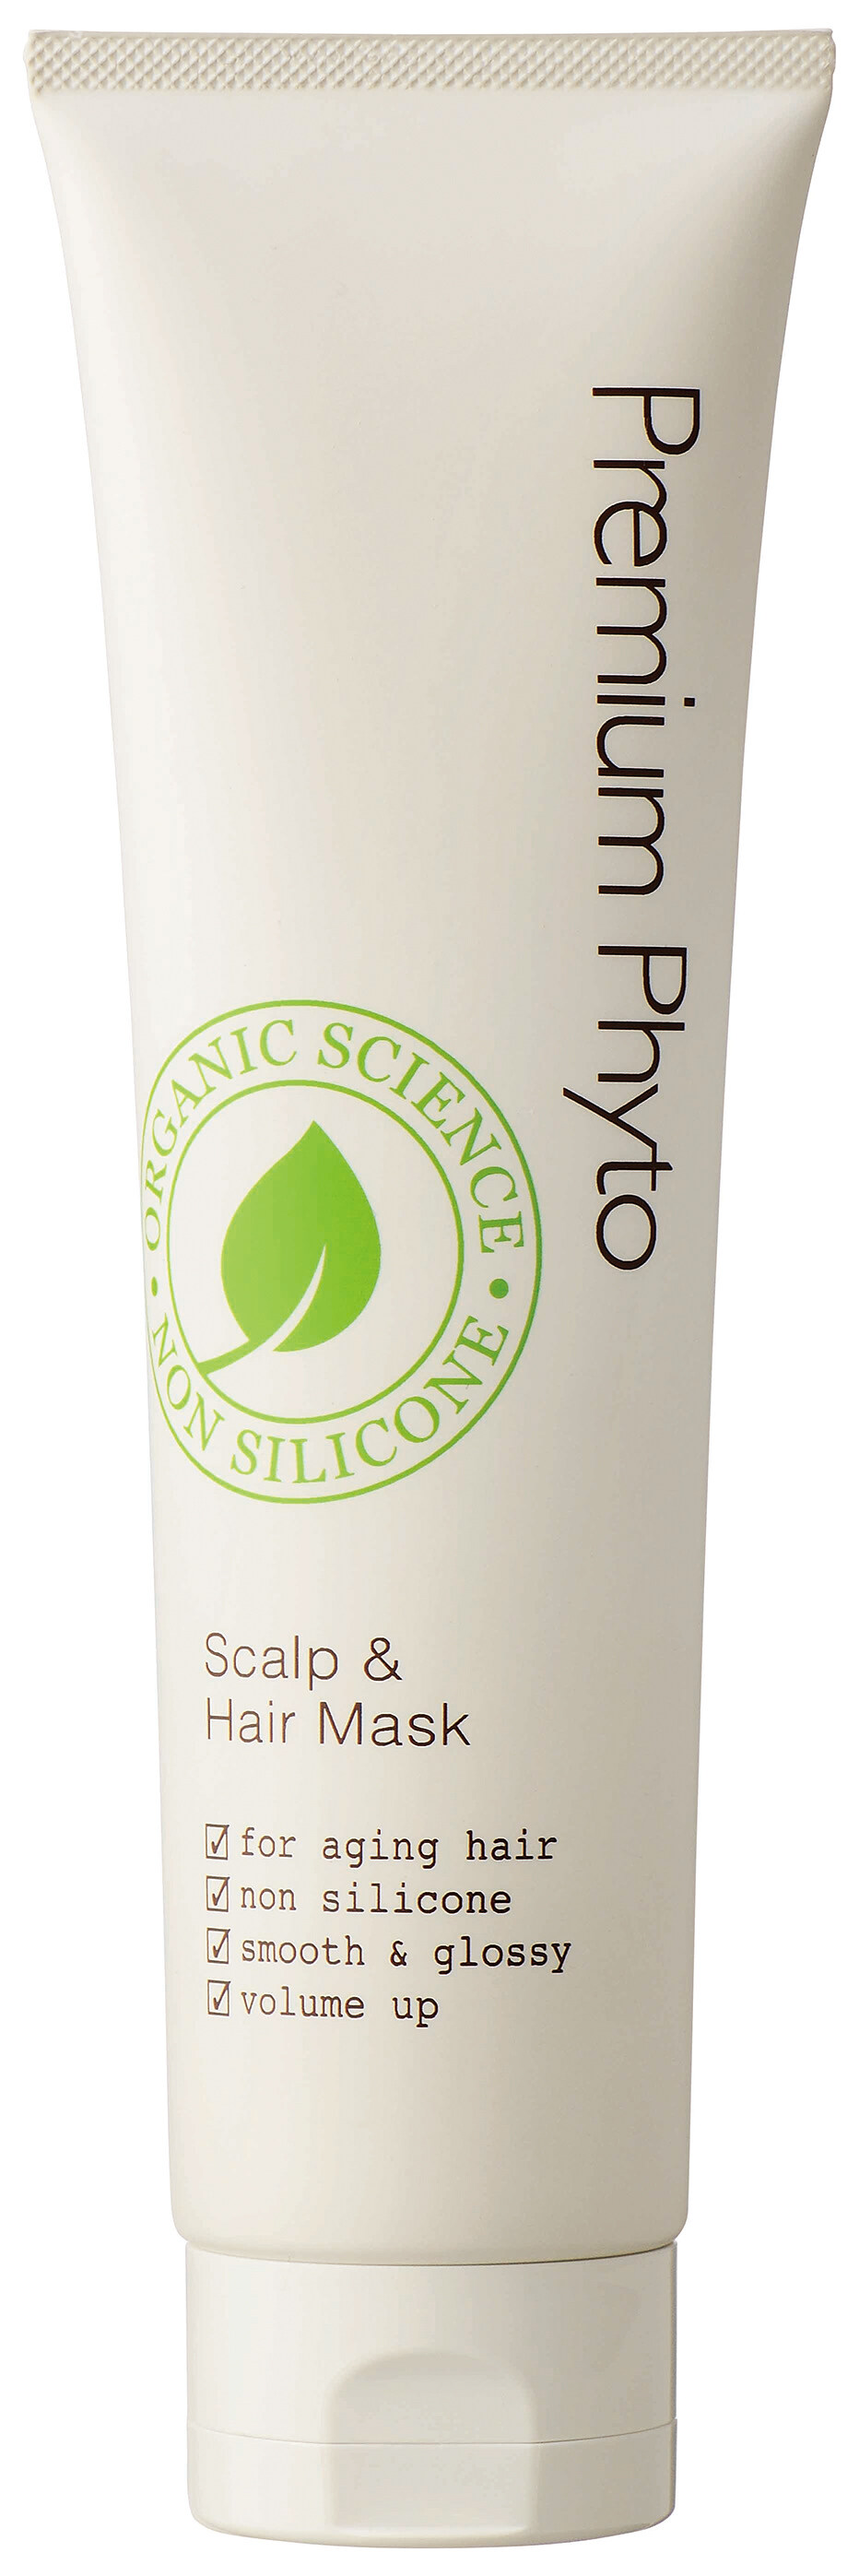 Ampleur Premium Phyto Scalp & Hair Mask($330)